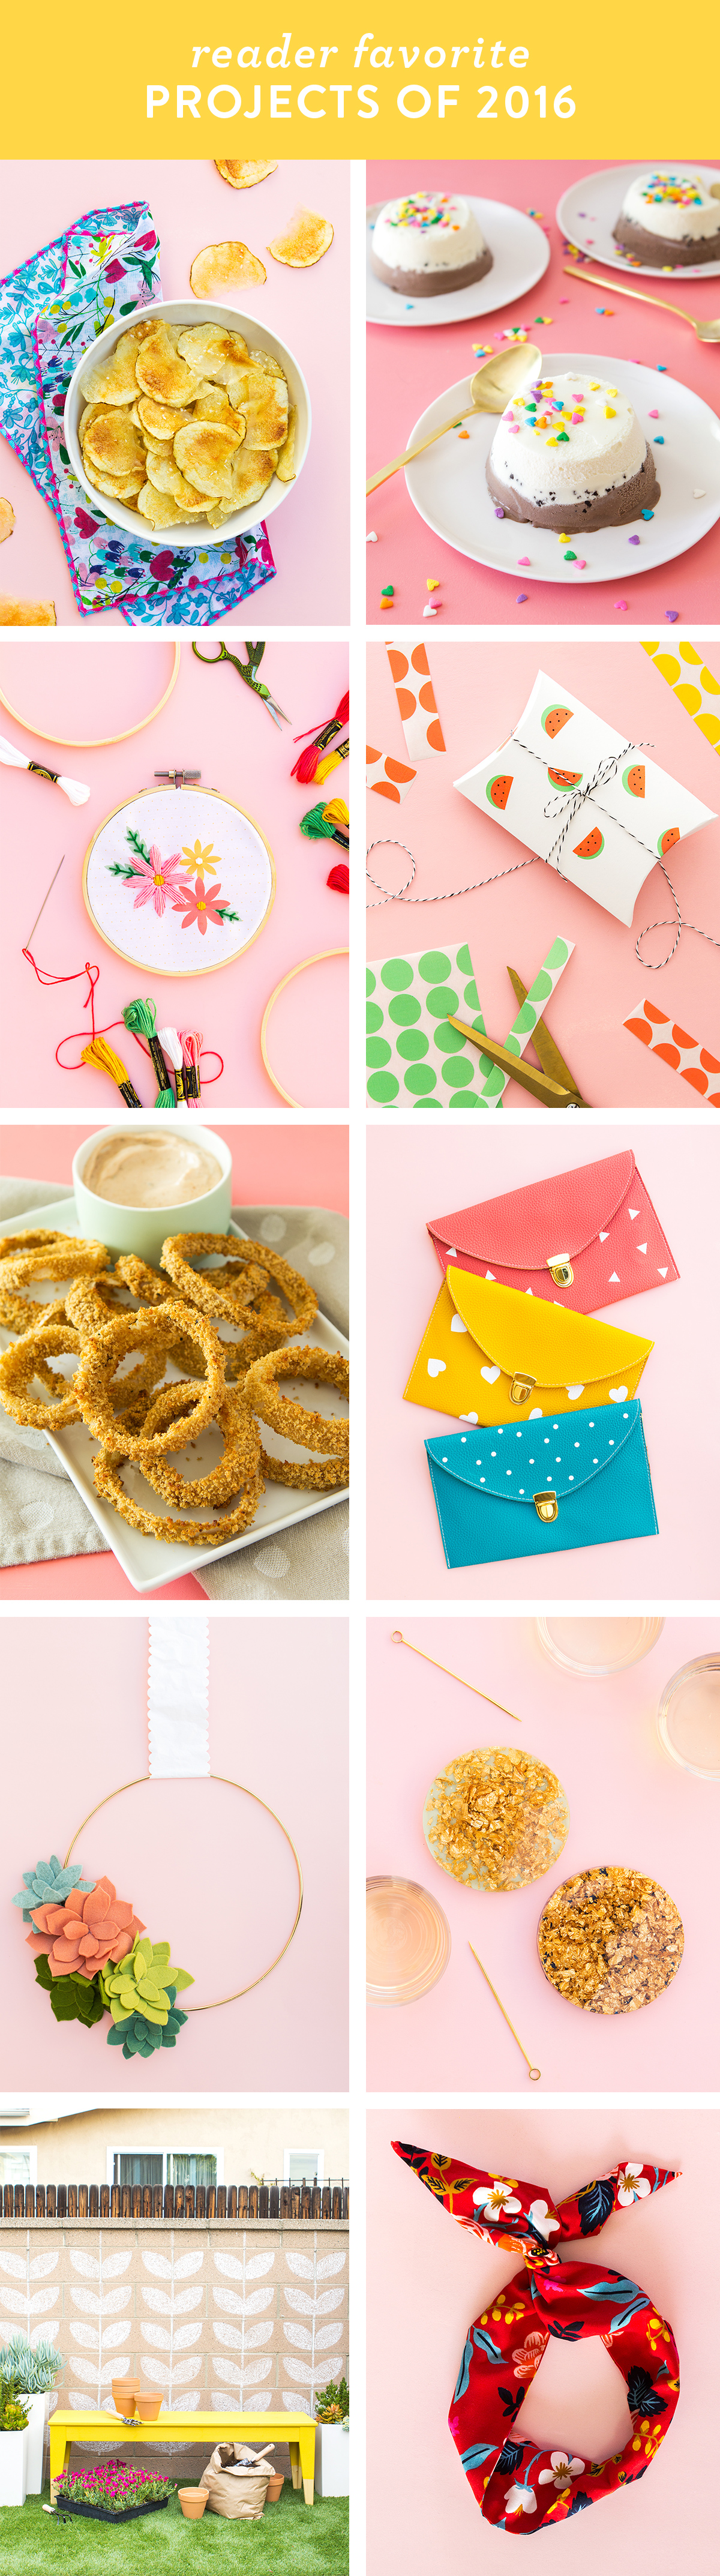 See what 10 recipes and DIY projects were reader favorites in 2016!